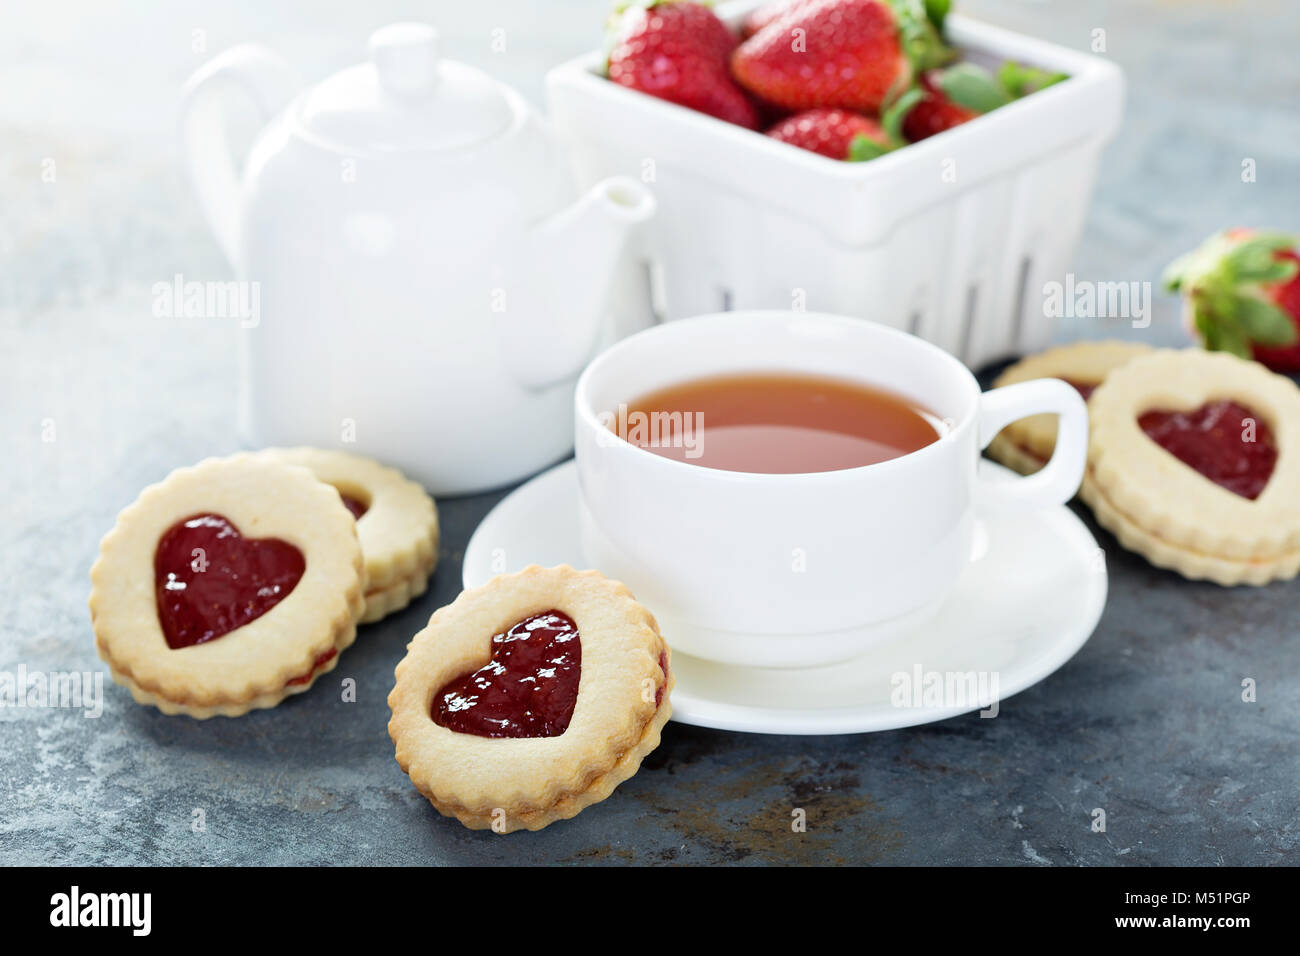 Vanilla linzer cookies with strawberry jelly filling and heart cutouts - Stock Image